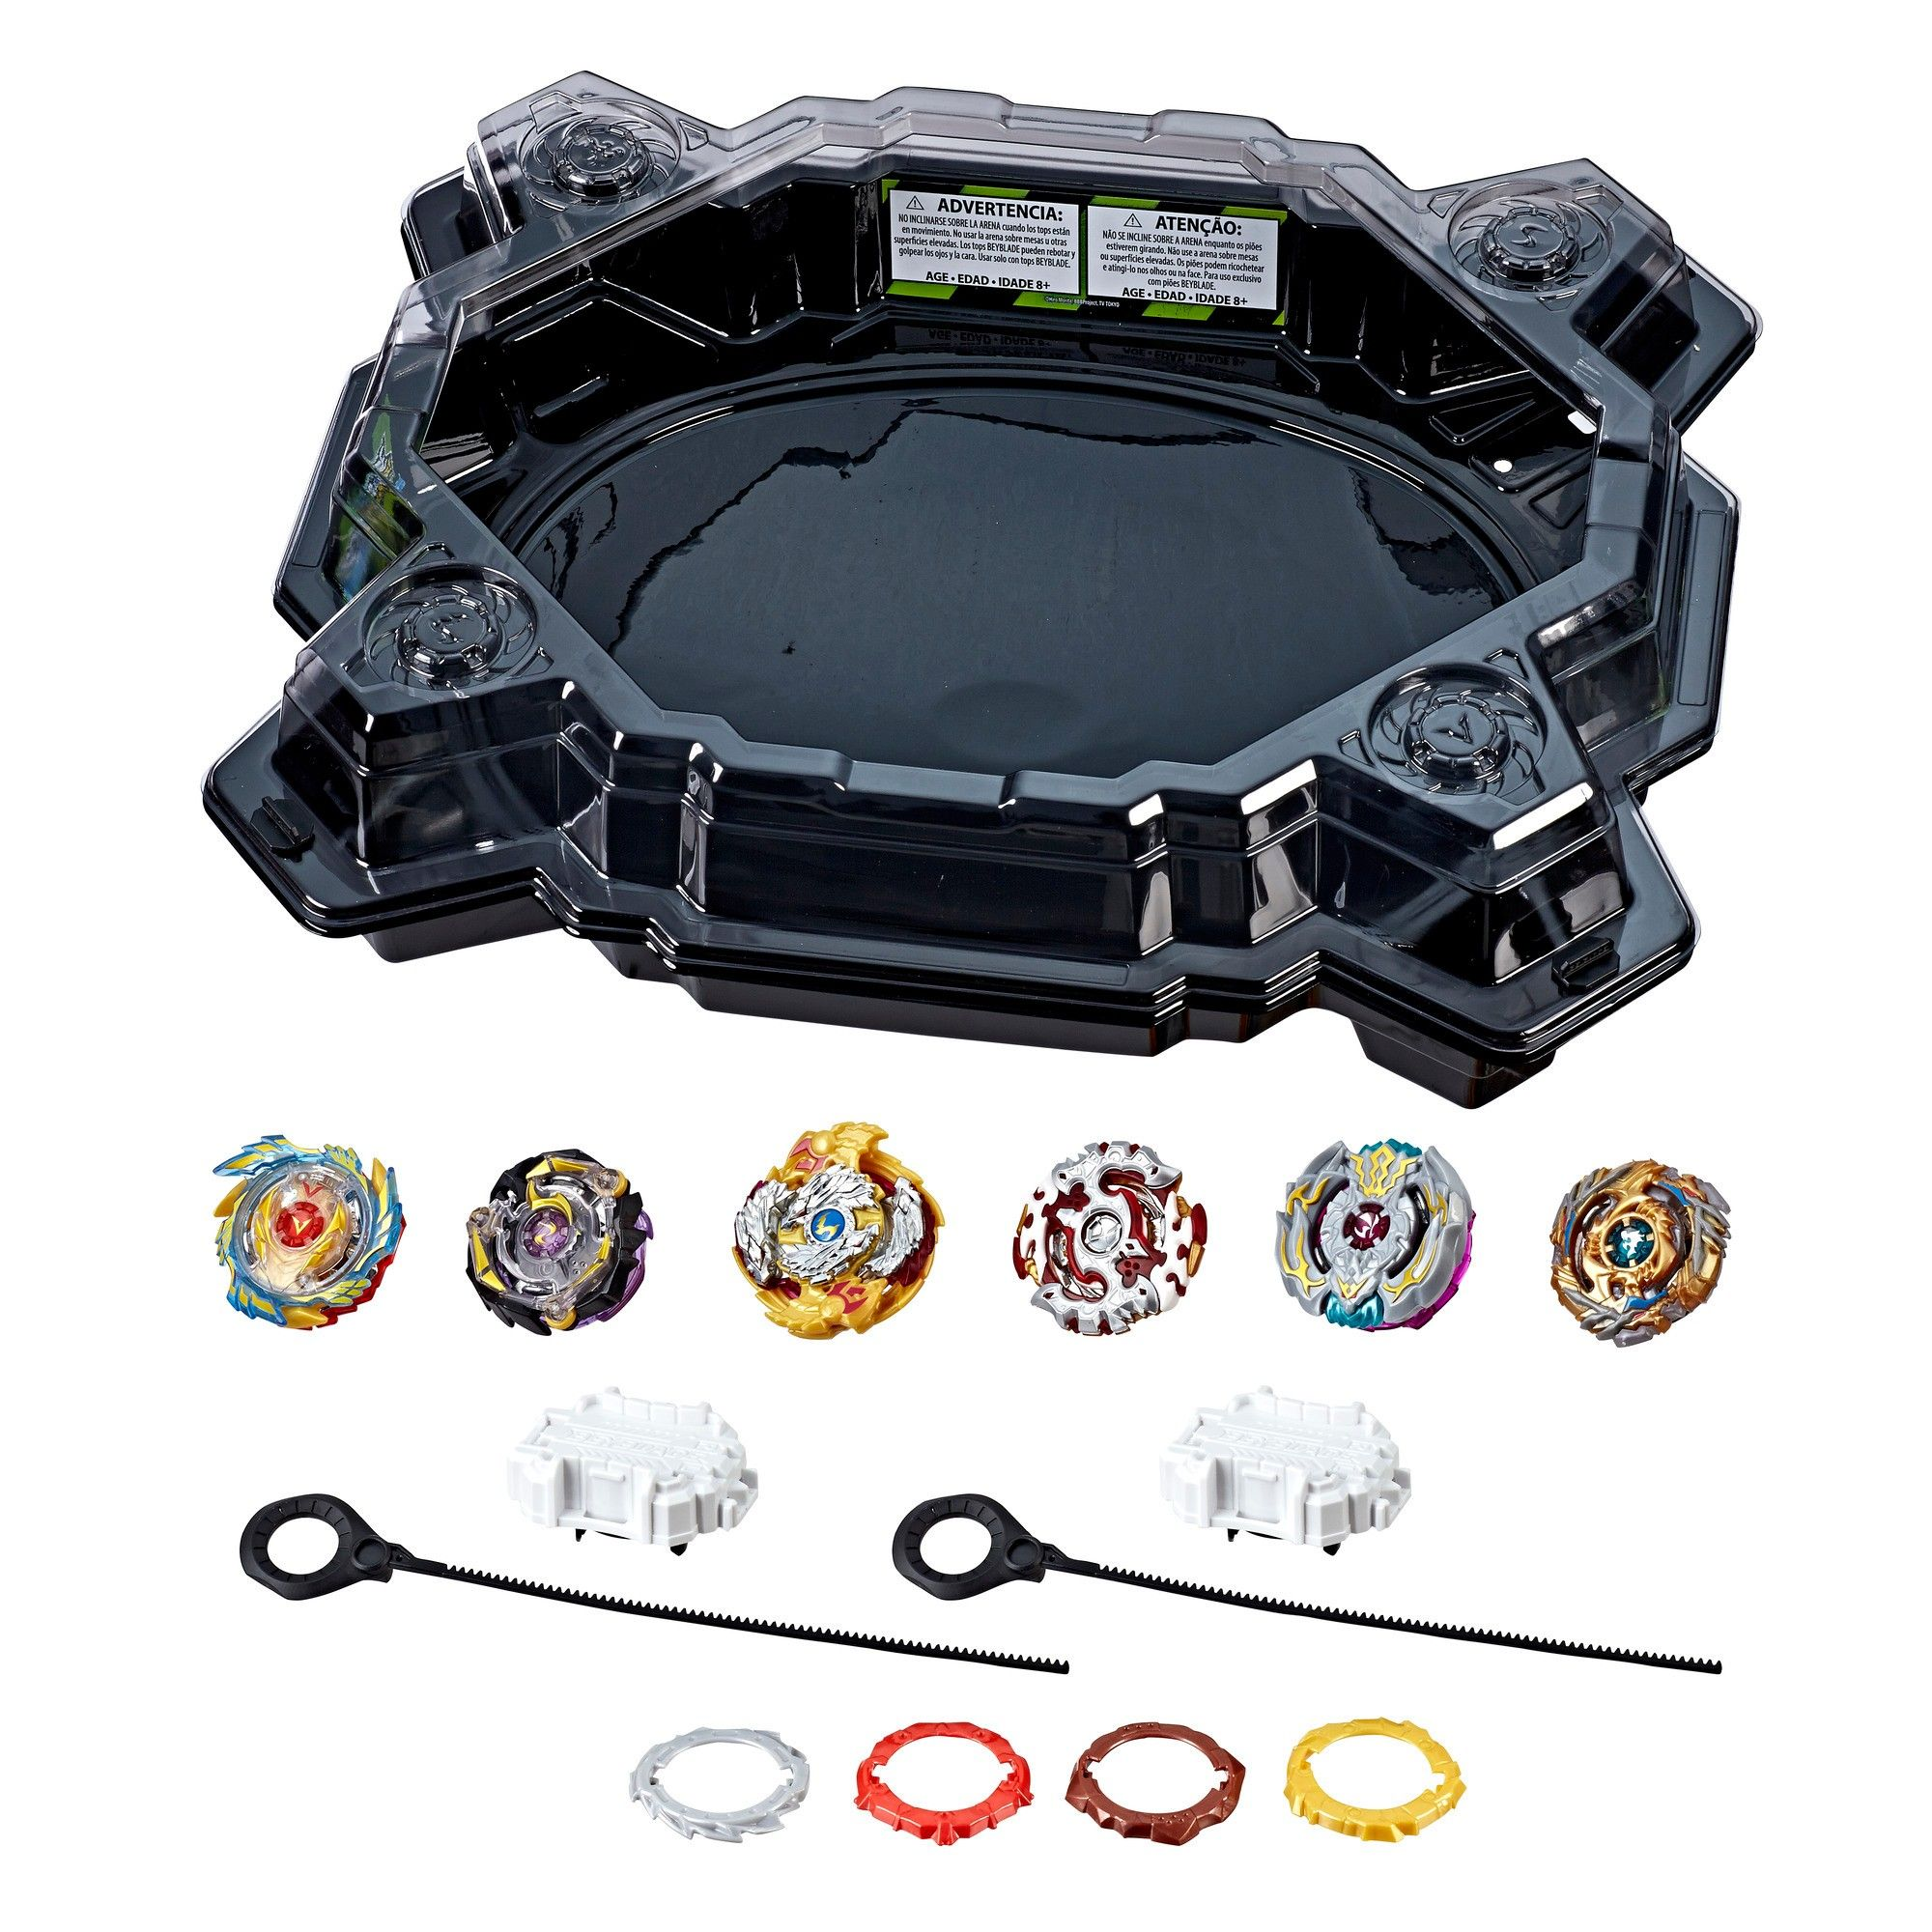 Beyblade Burst Evolution Ultimate Tournament Collection Tops And Beystadium Multi Colored Beyblade Burst Toys R Us Canada Beyblade Toys